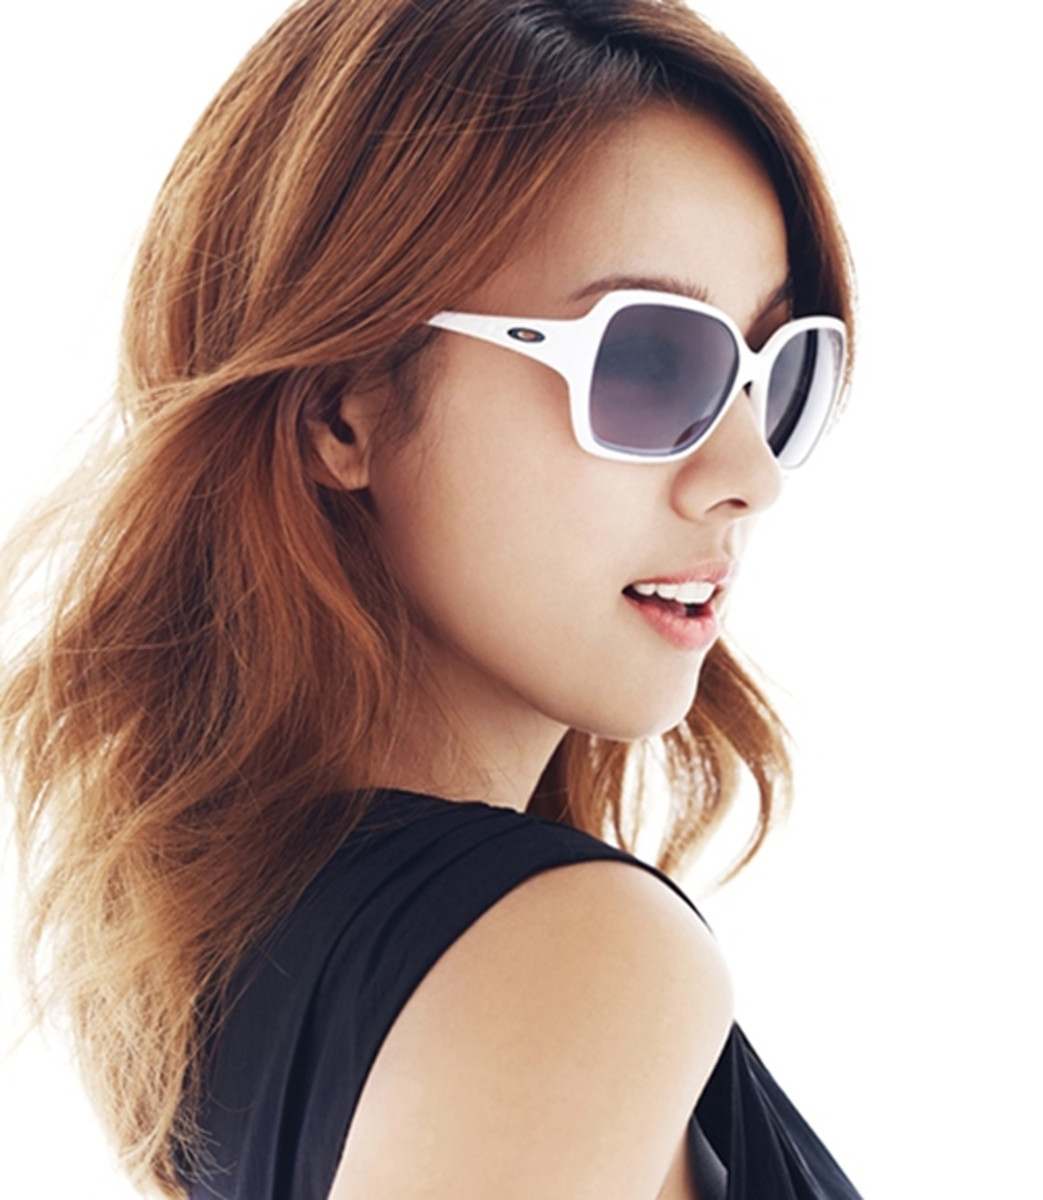 hyori-lee-a-look-at-this-beautiful-korean-pop-music-singer-and-supermodel-in-photos